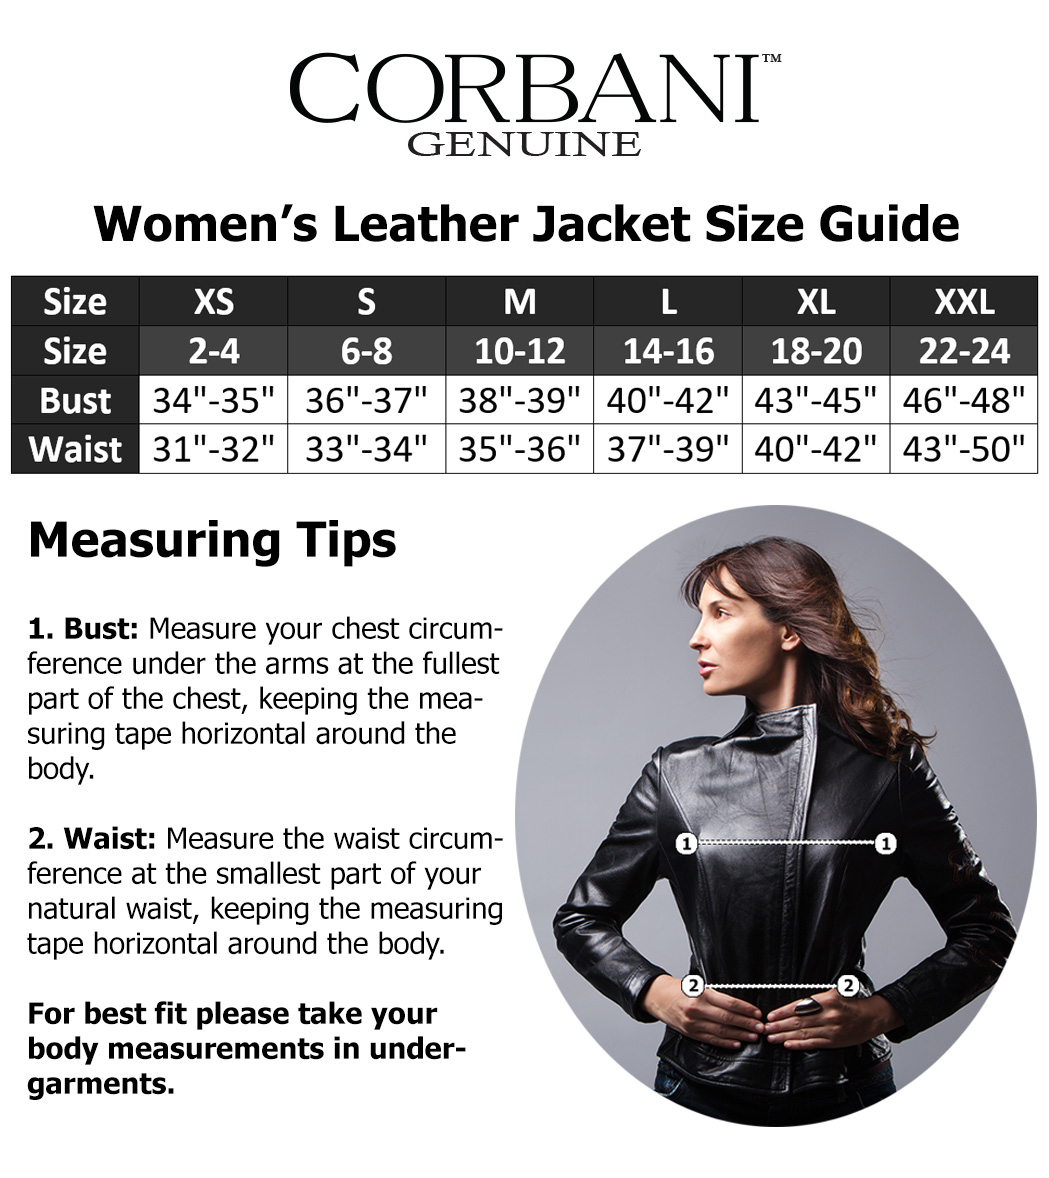 Corbani-Genuine-Women Customer Care